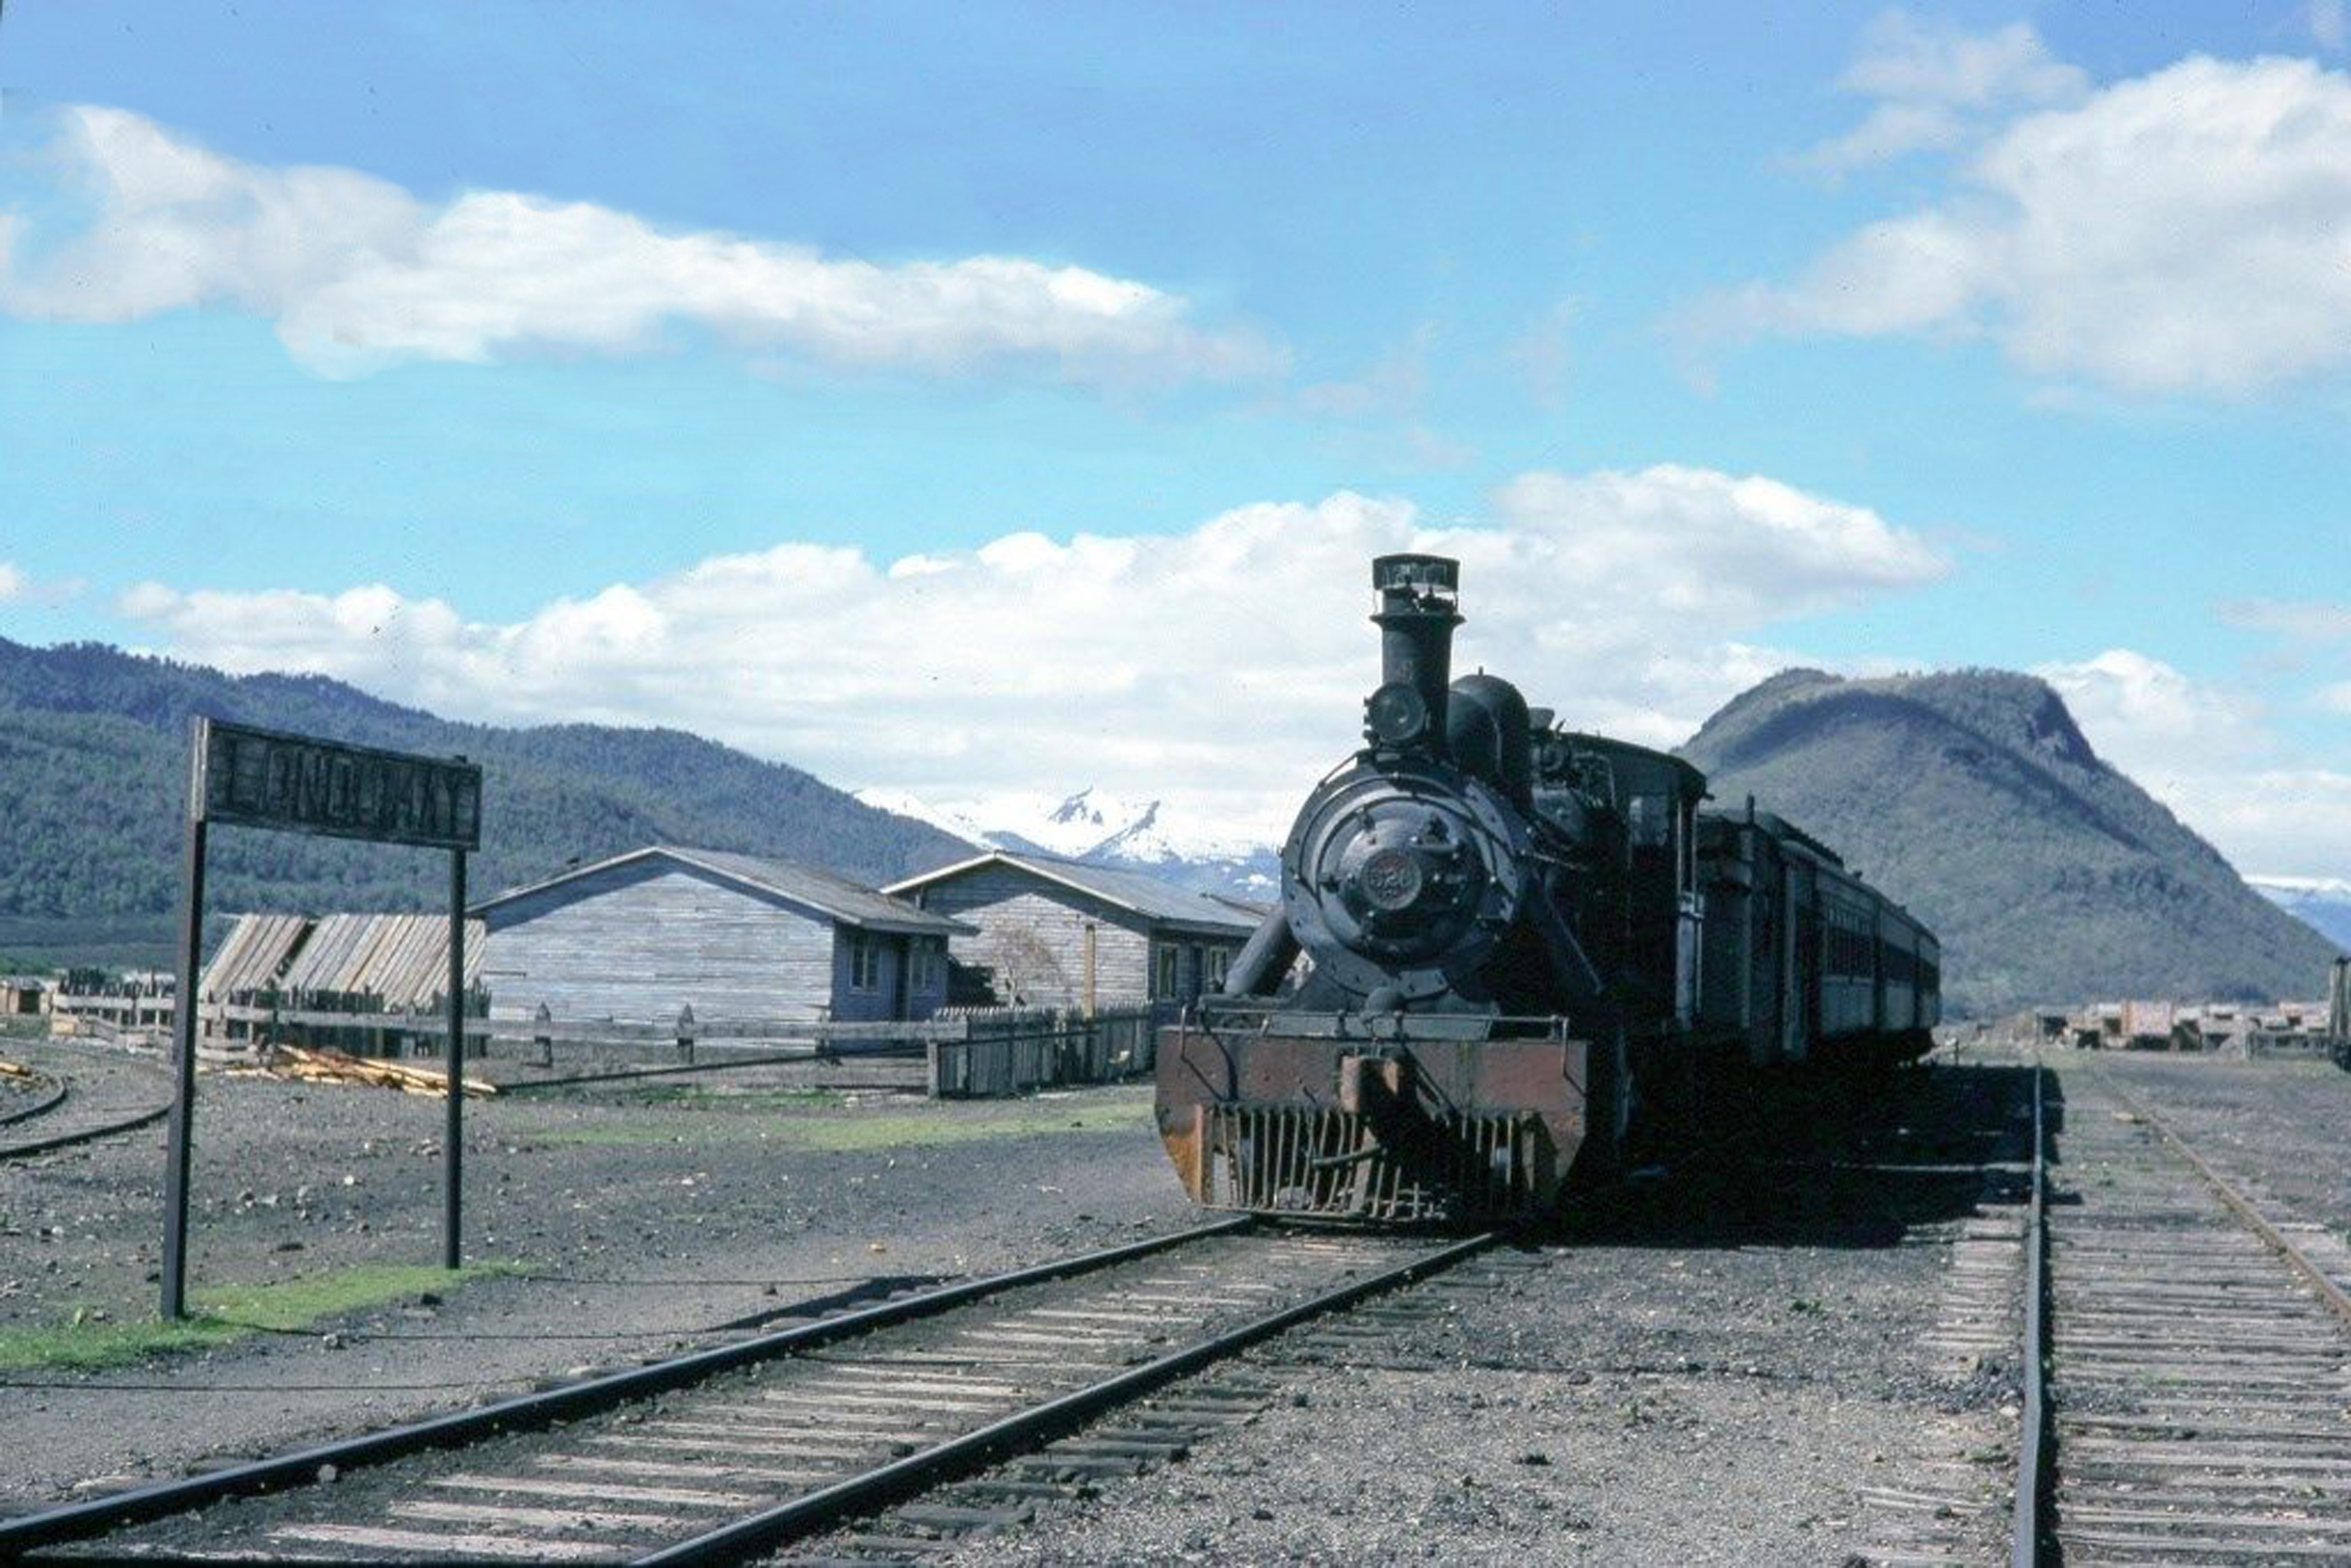 Enterreno - Fotos históricas de chile - fotos antiguas de Chile - Estación de Lonquimay en 1976